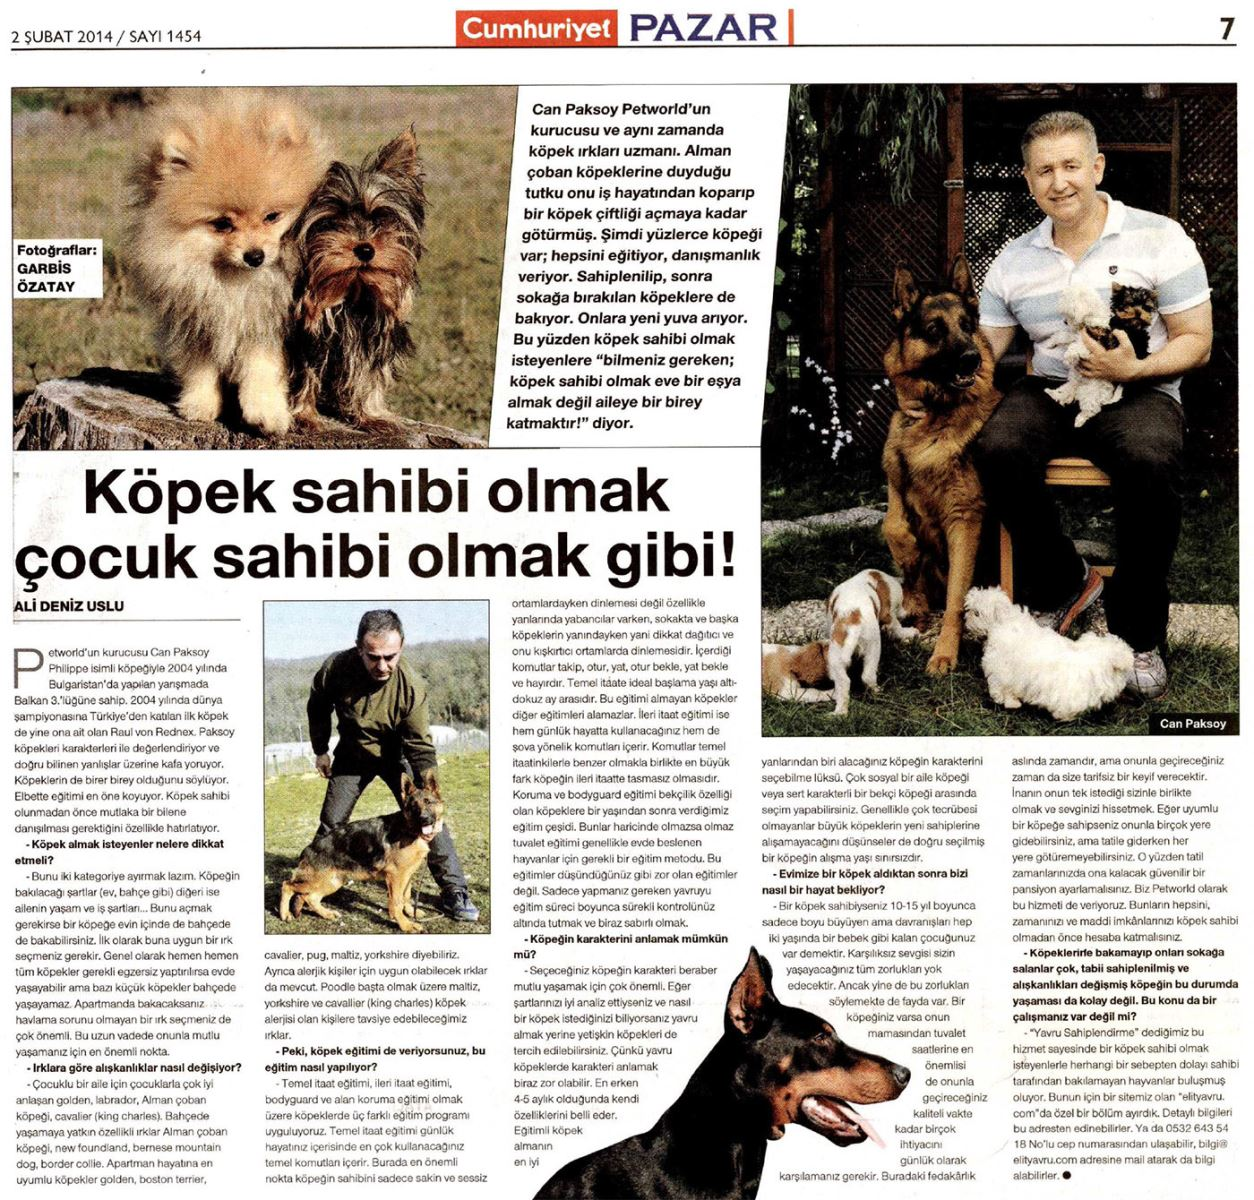 Alman Kurdu Petworld Kennel Can Paksoy